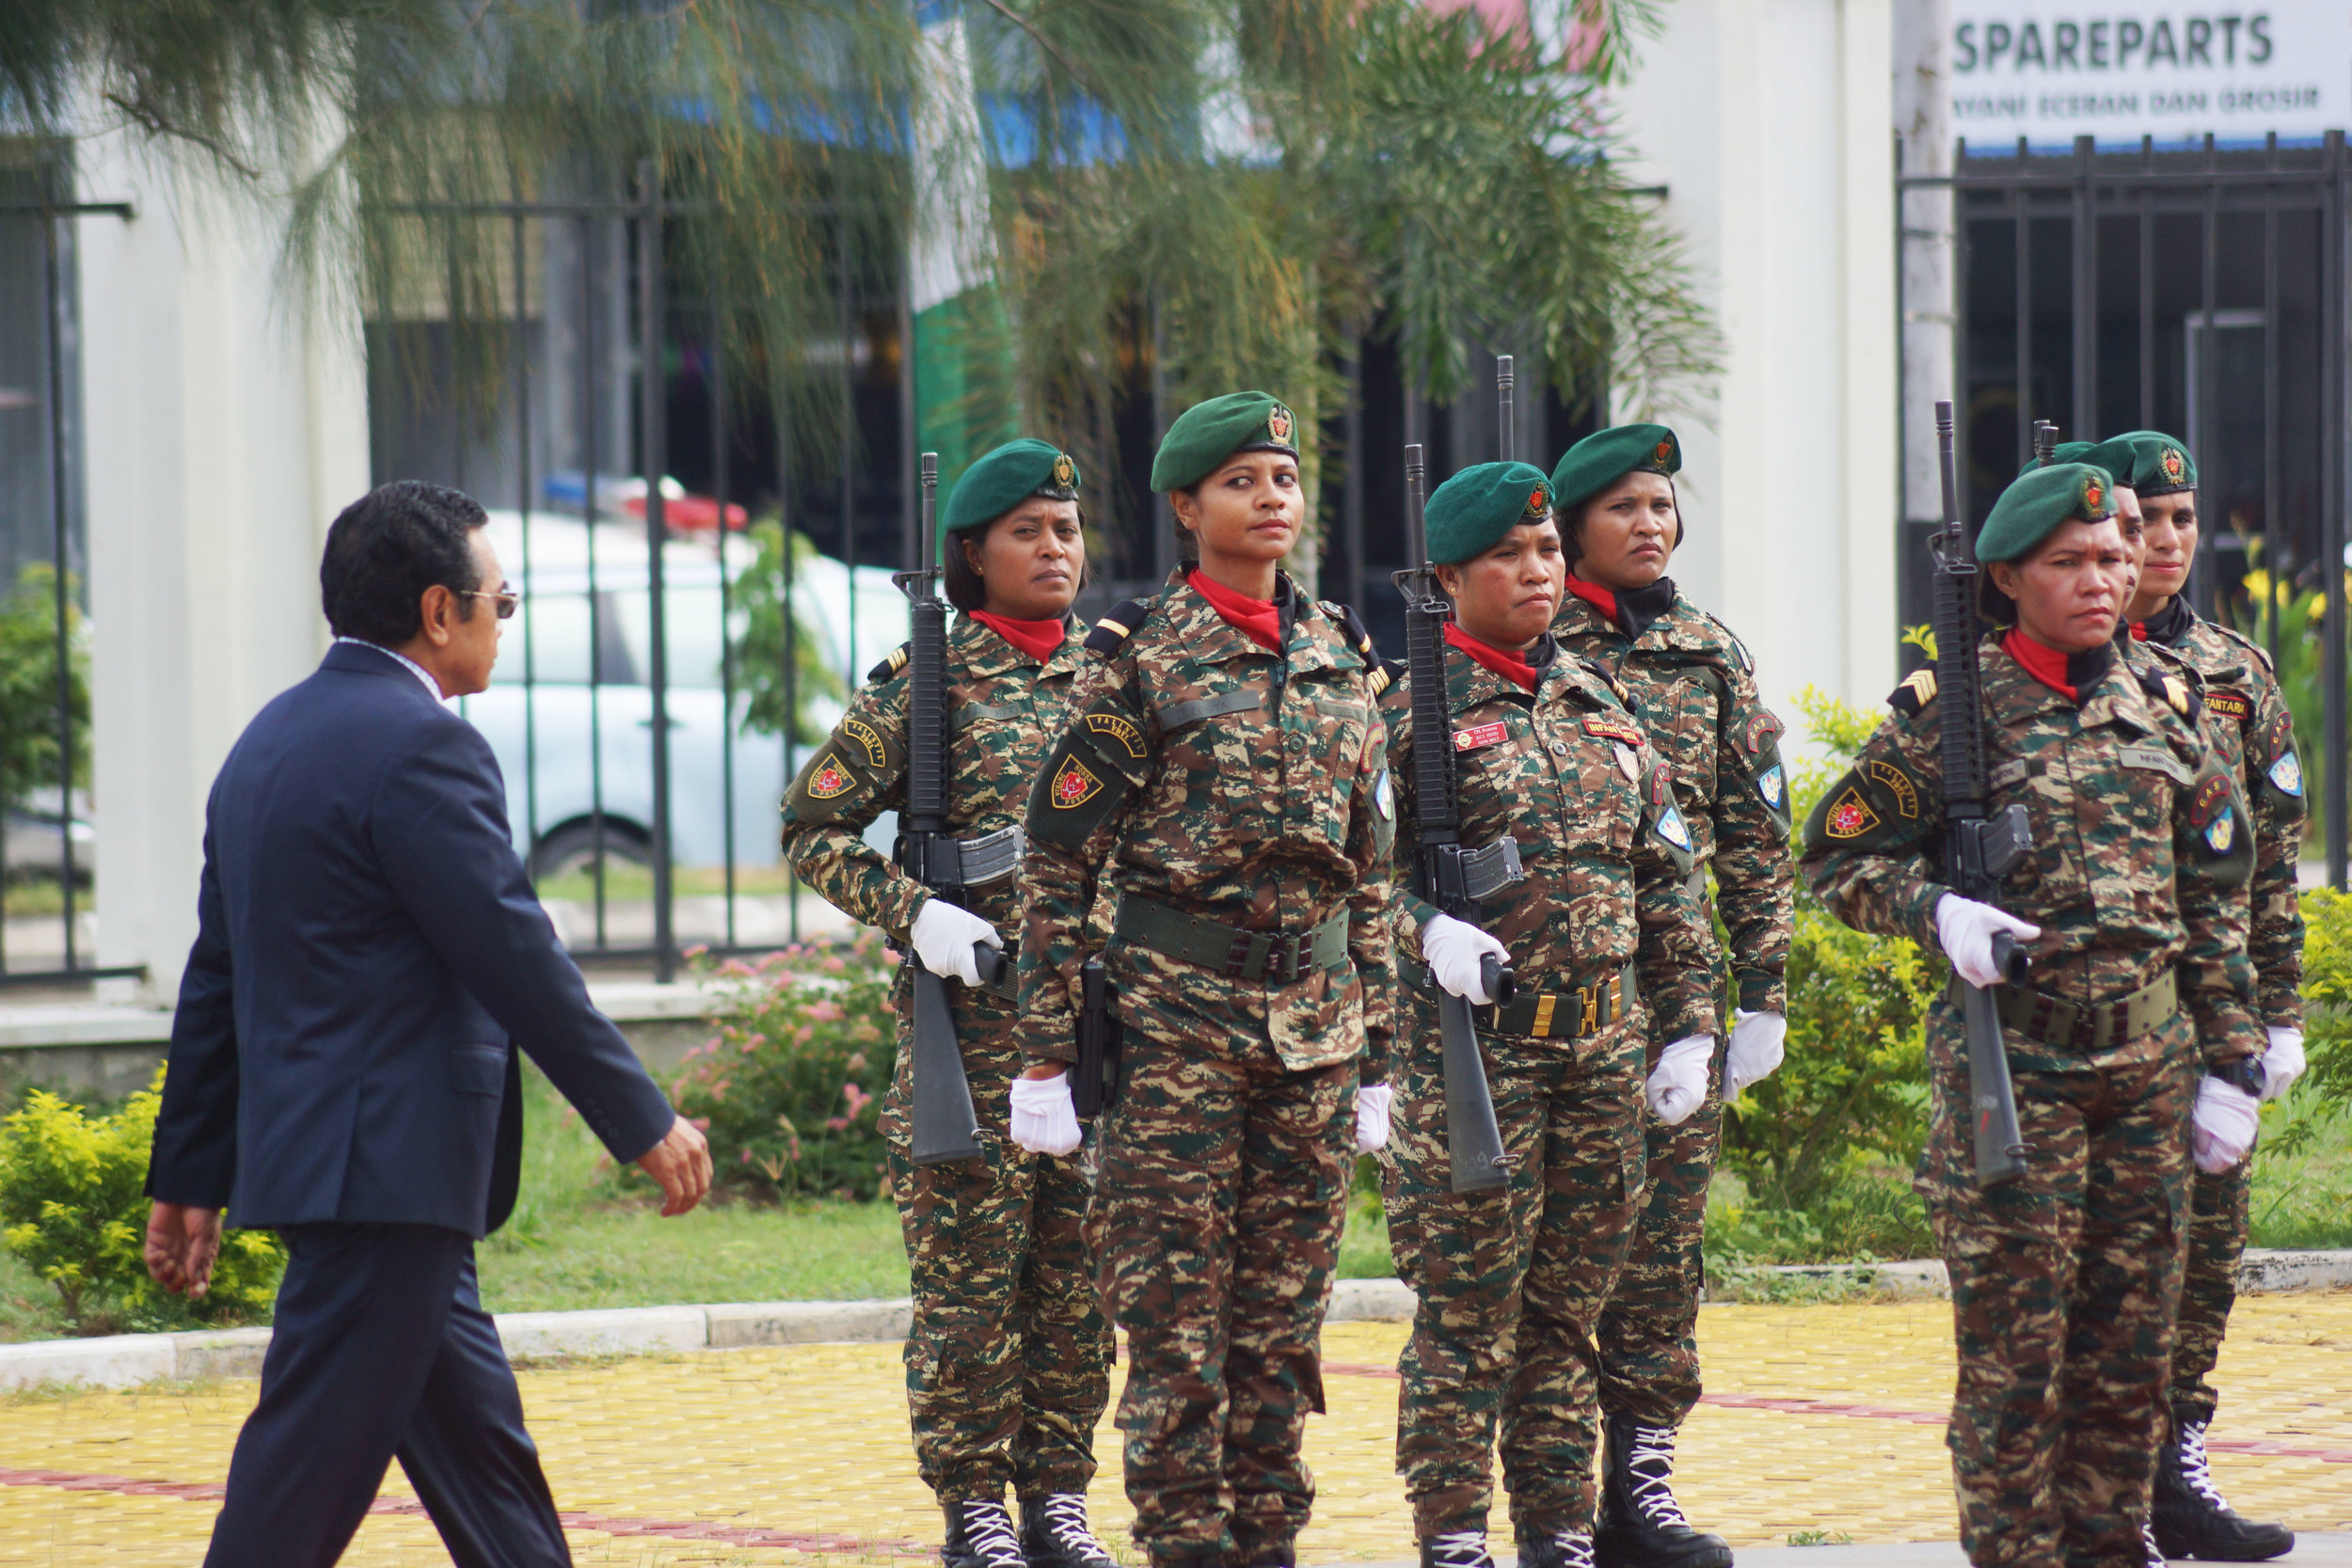 President Francisco Guterres marches past a group of female soldiers. (Edward Cavanough, February 2, 2018, Dili).